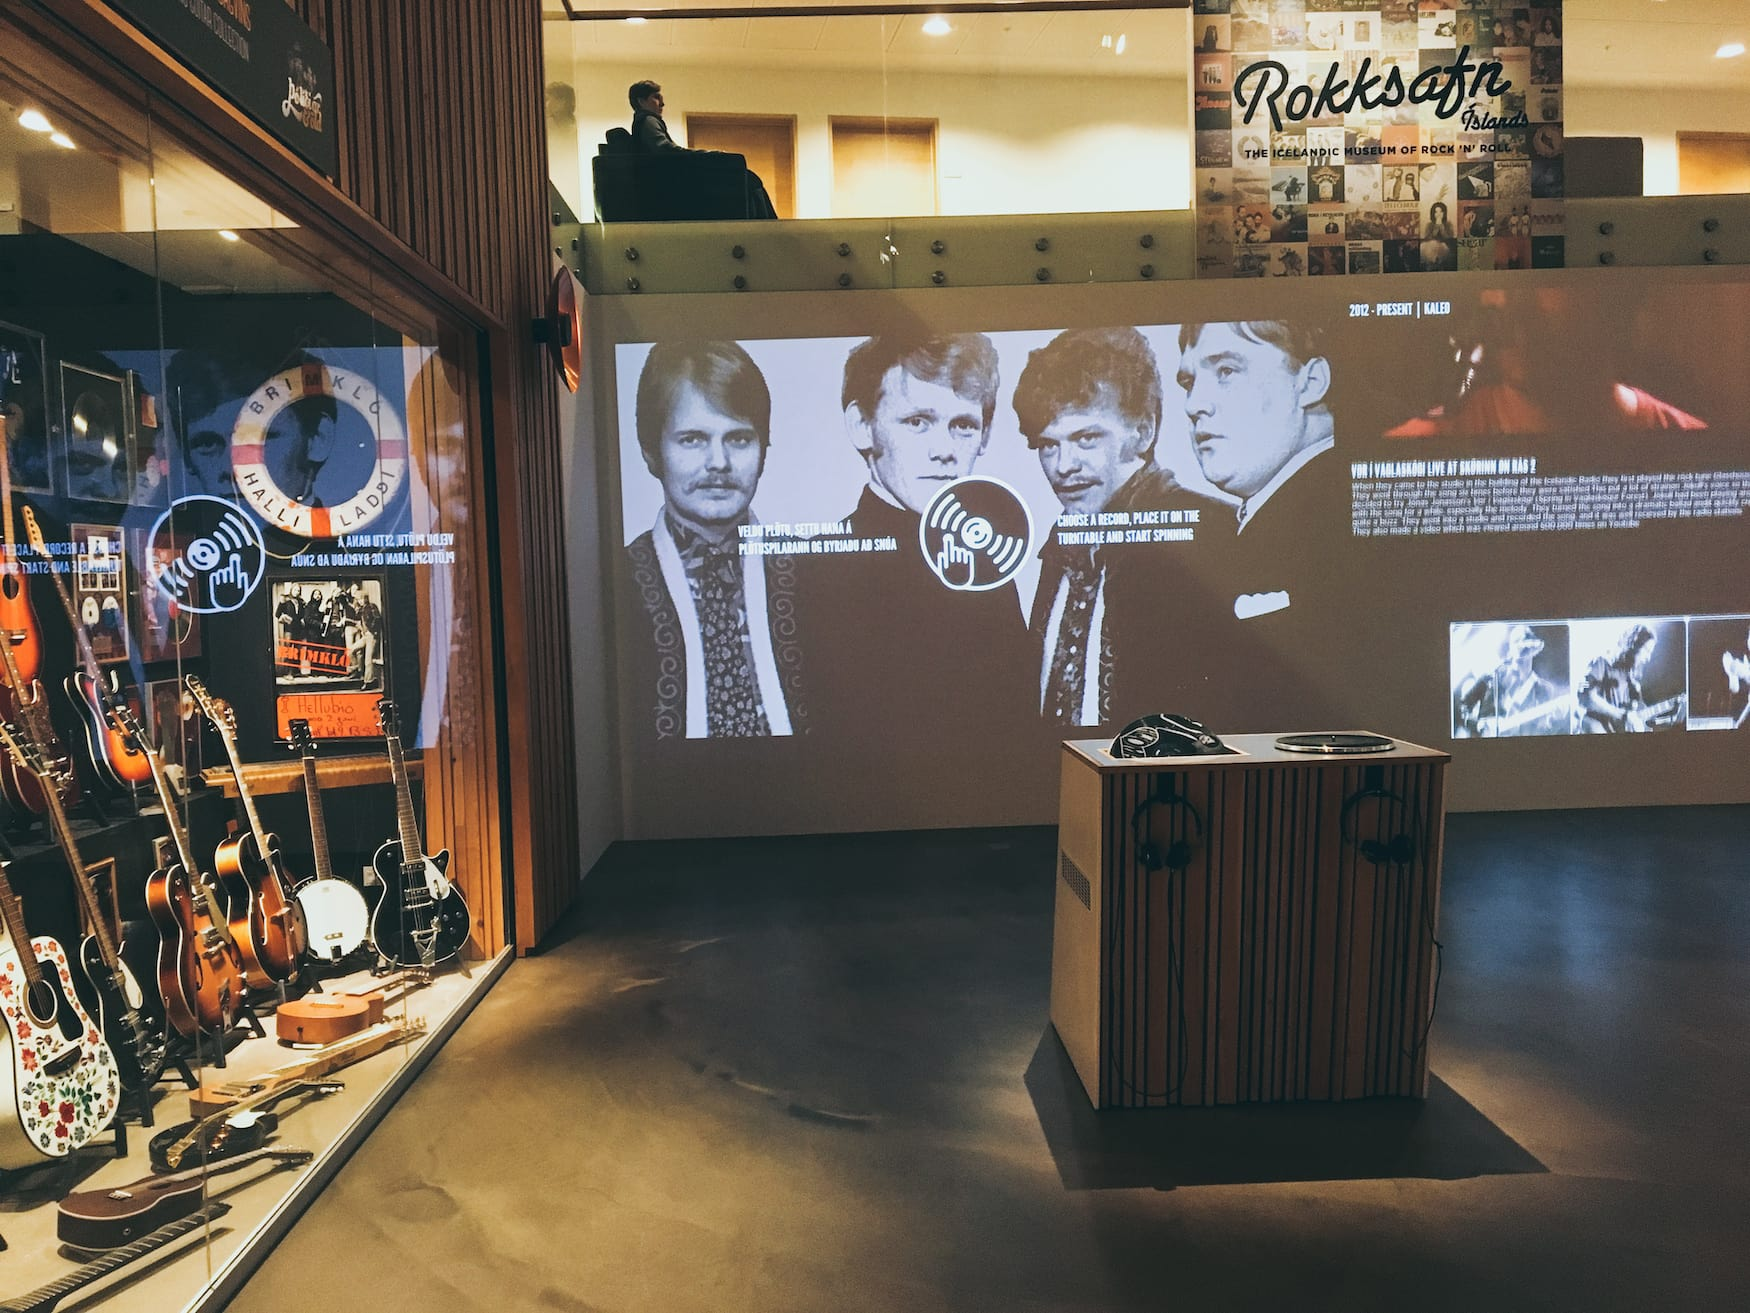 Blick ins Rock and Roll Museum in Keflavik, Island